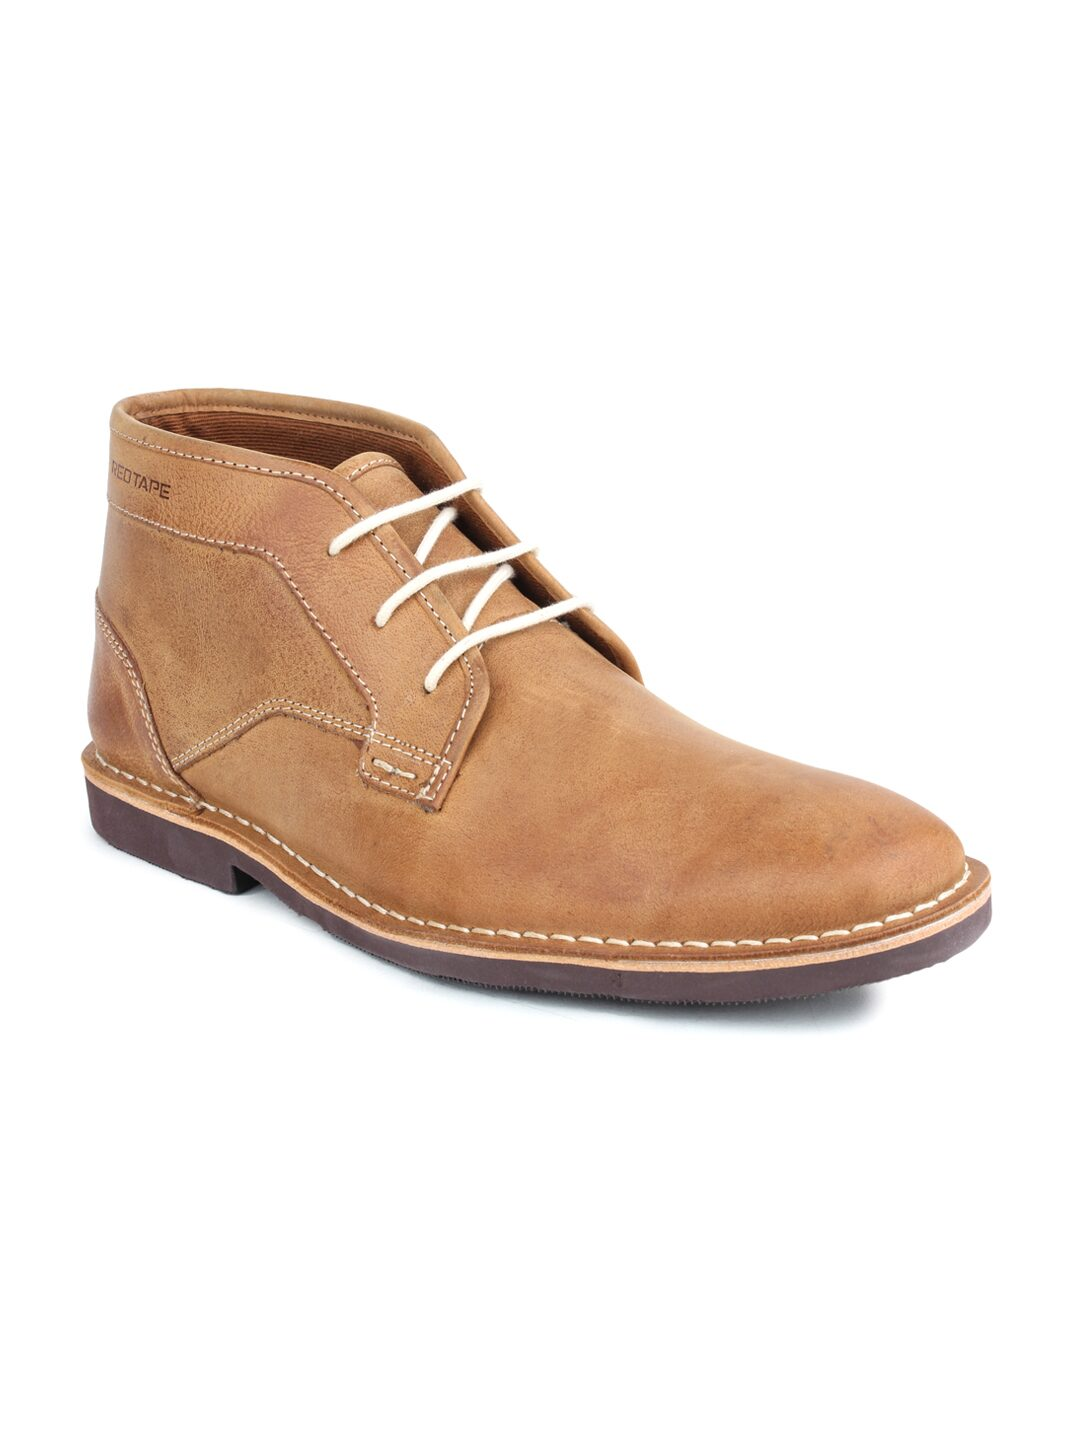 red tape men tan brown leather chukka boots